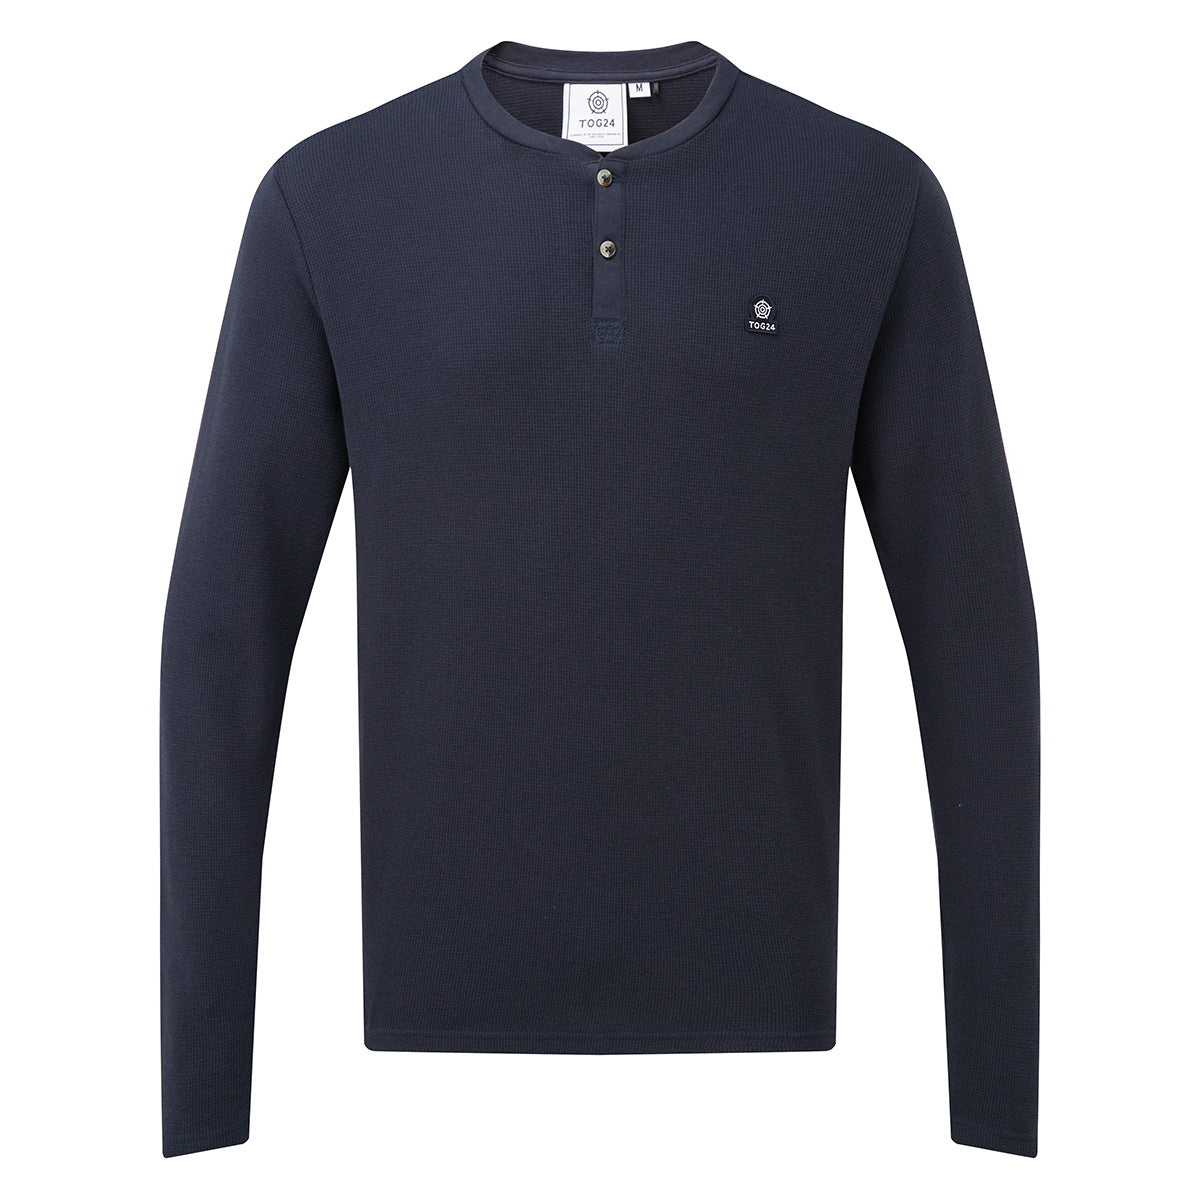 Drewton Mens Grandad Collar T-Shirt - Dark Indigo